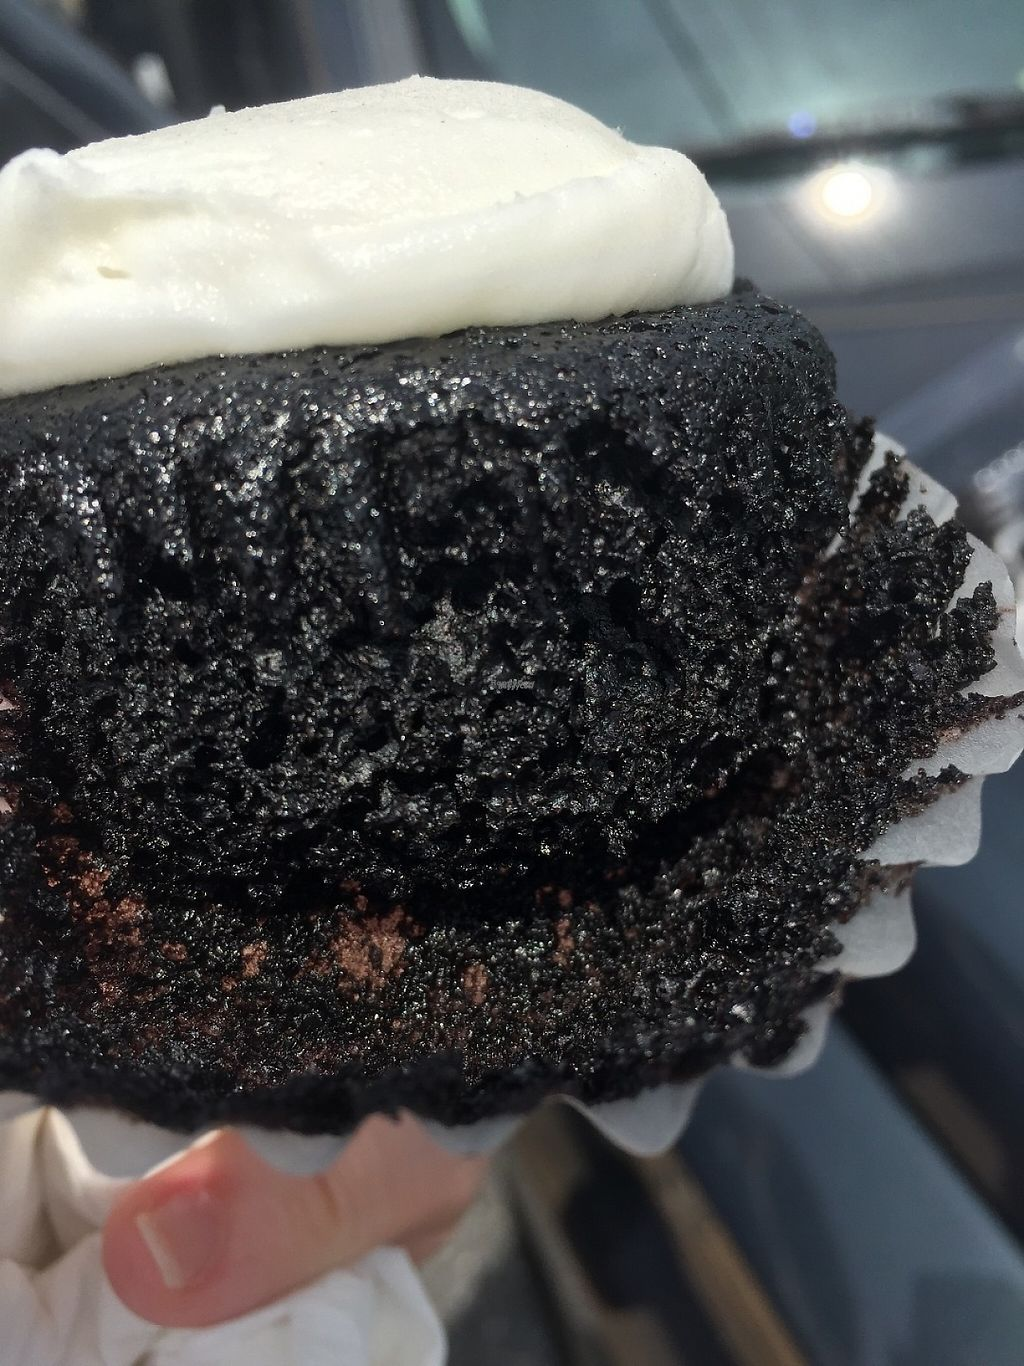 """Photo of Lancaster Cupcake  by <a href=""""/members/profile/ginliv"""">ginliv</a> <br/>Chocolate Vegan Cupcake w/ Vanilla icing <br/> April 30, 2017  - <a href='/contact/abuse/image/65757/253981'>Report</a>"""